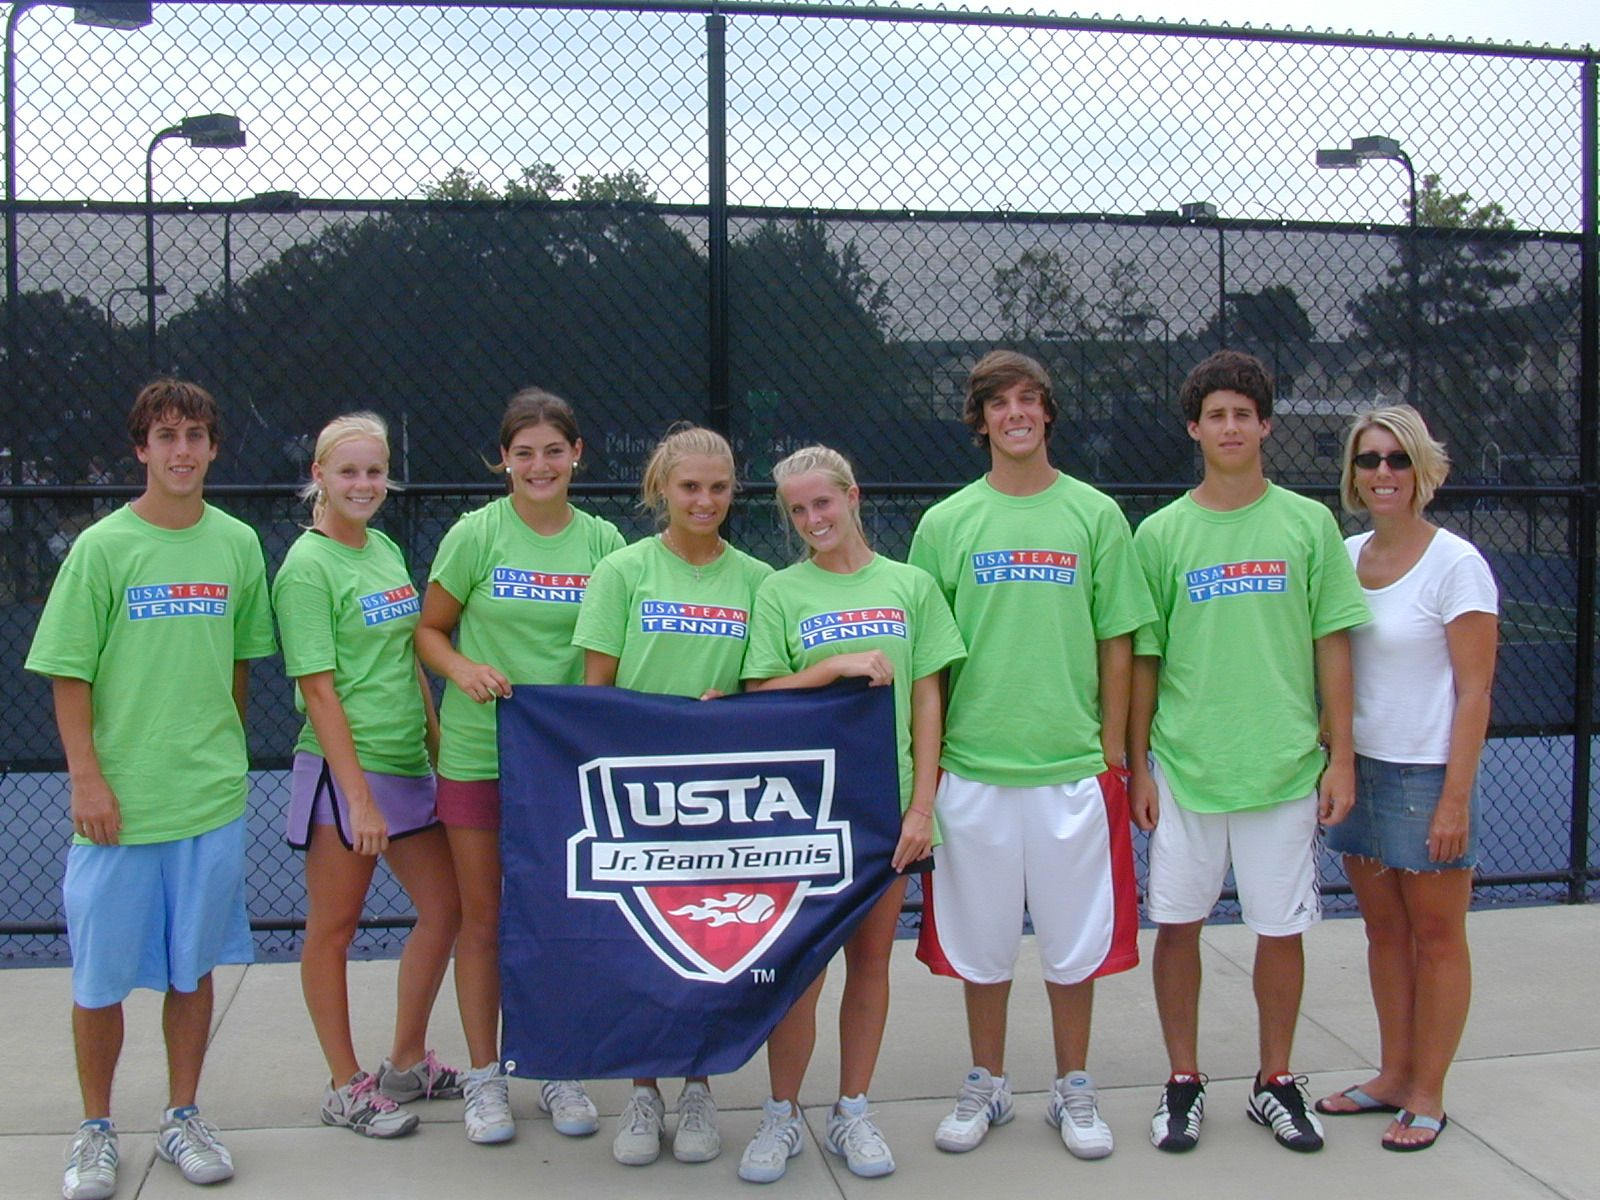 2006 Junior Team Tournament Team Columbia